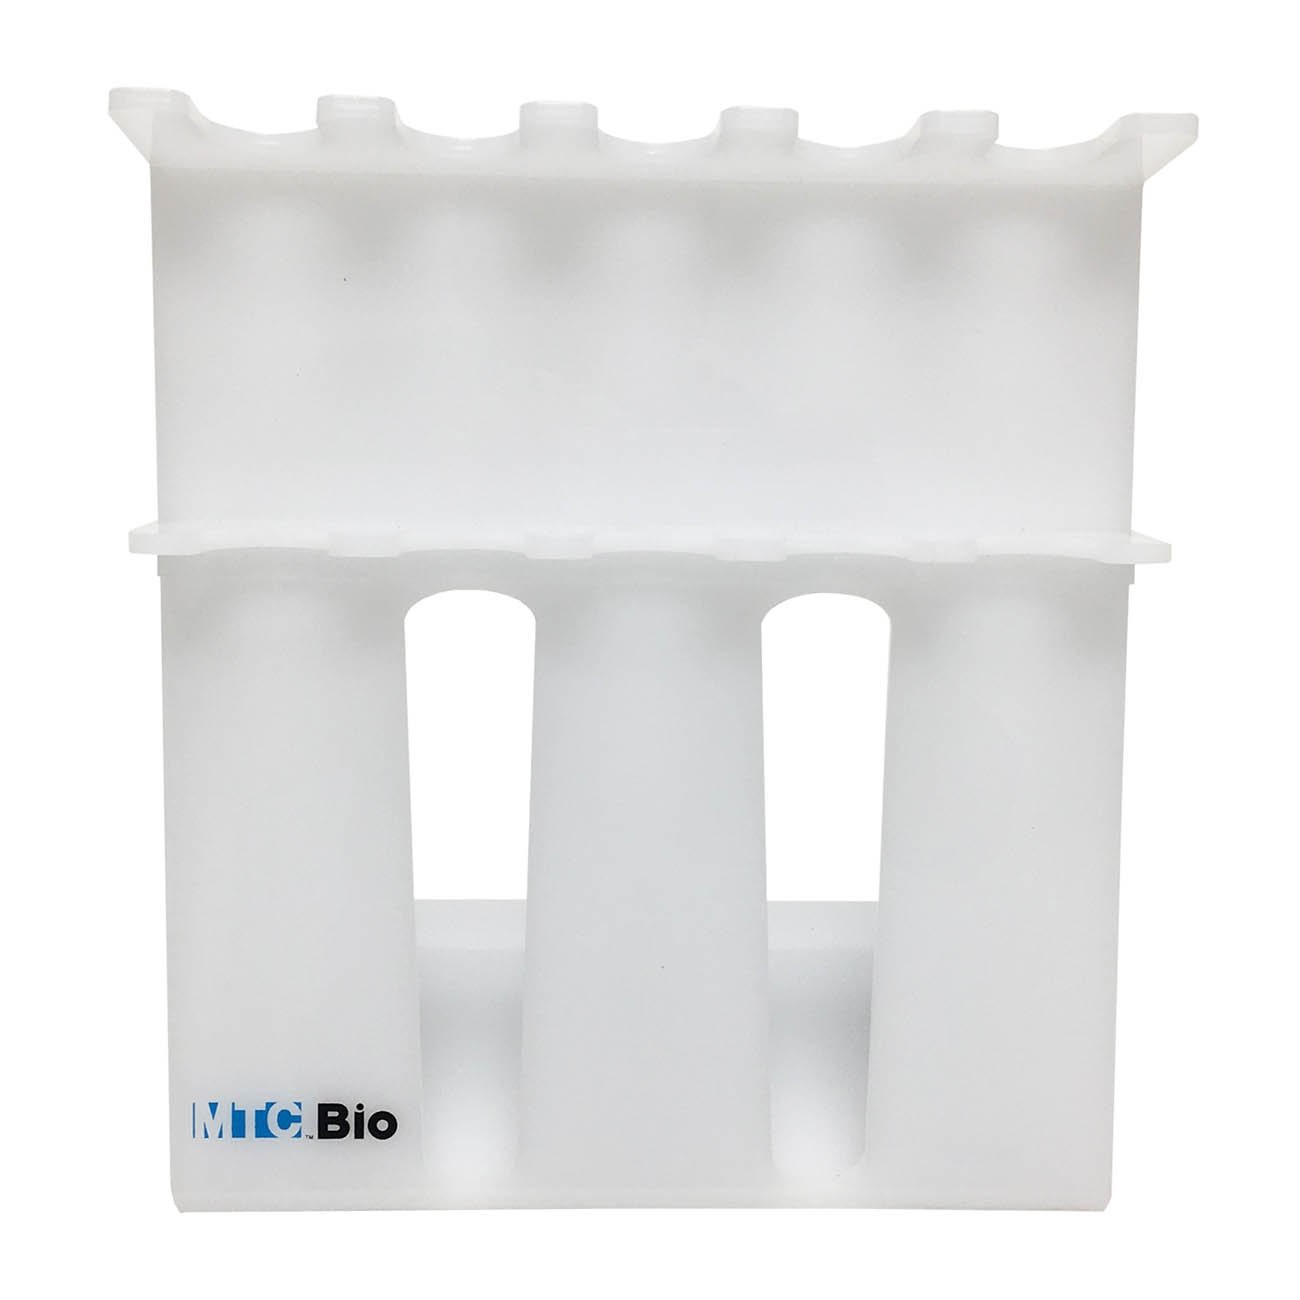 SureStand MultiChannel Capable 5-Place Acrylic Pipette Rack (Accepts 2 Multi-Channels)